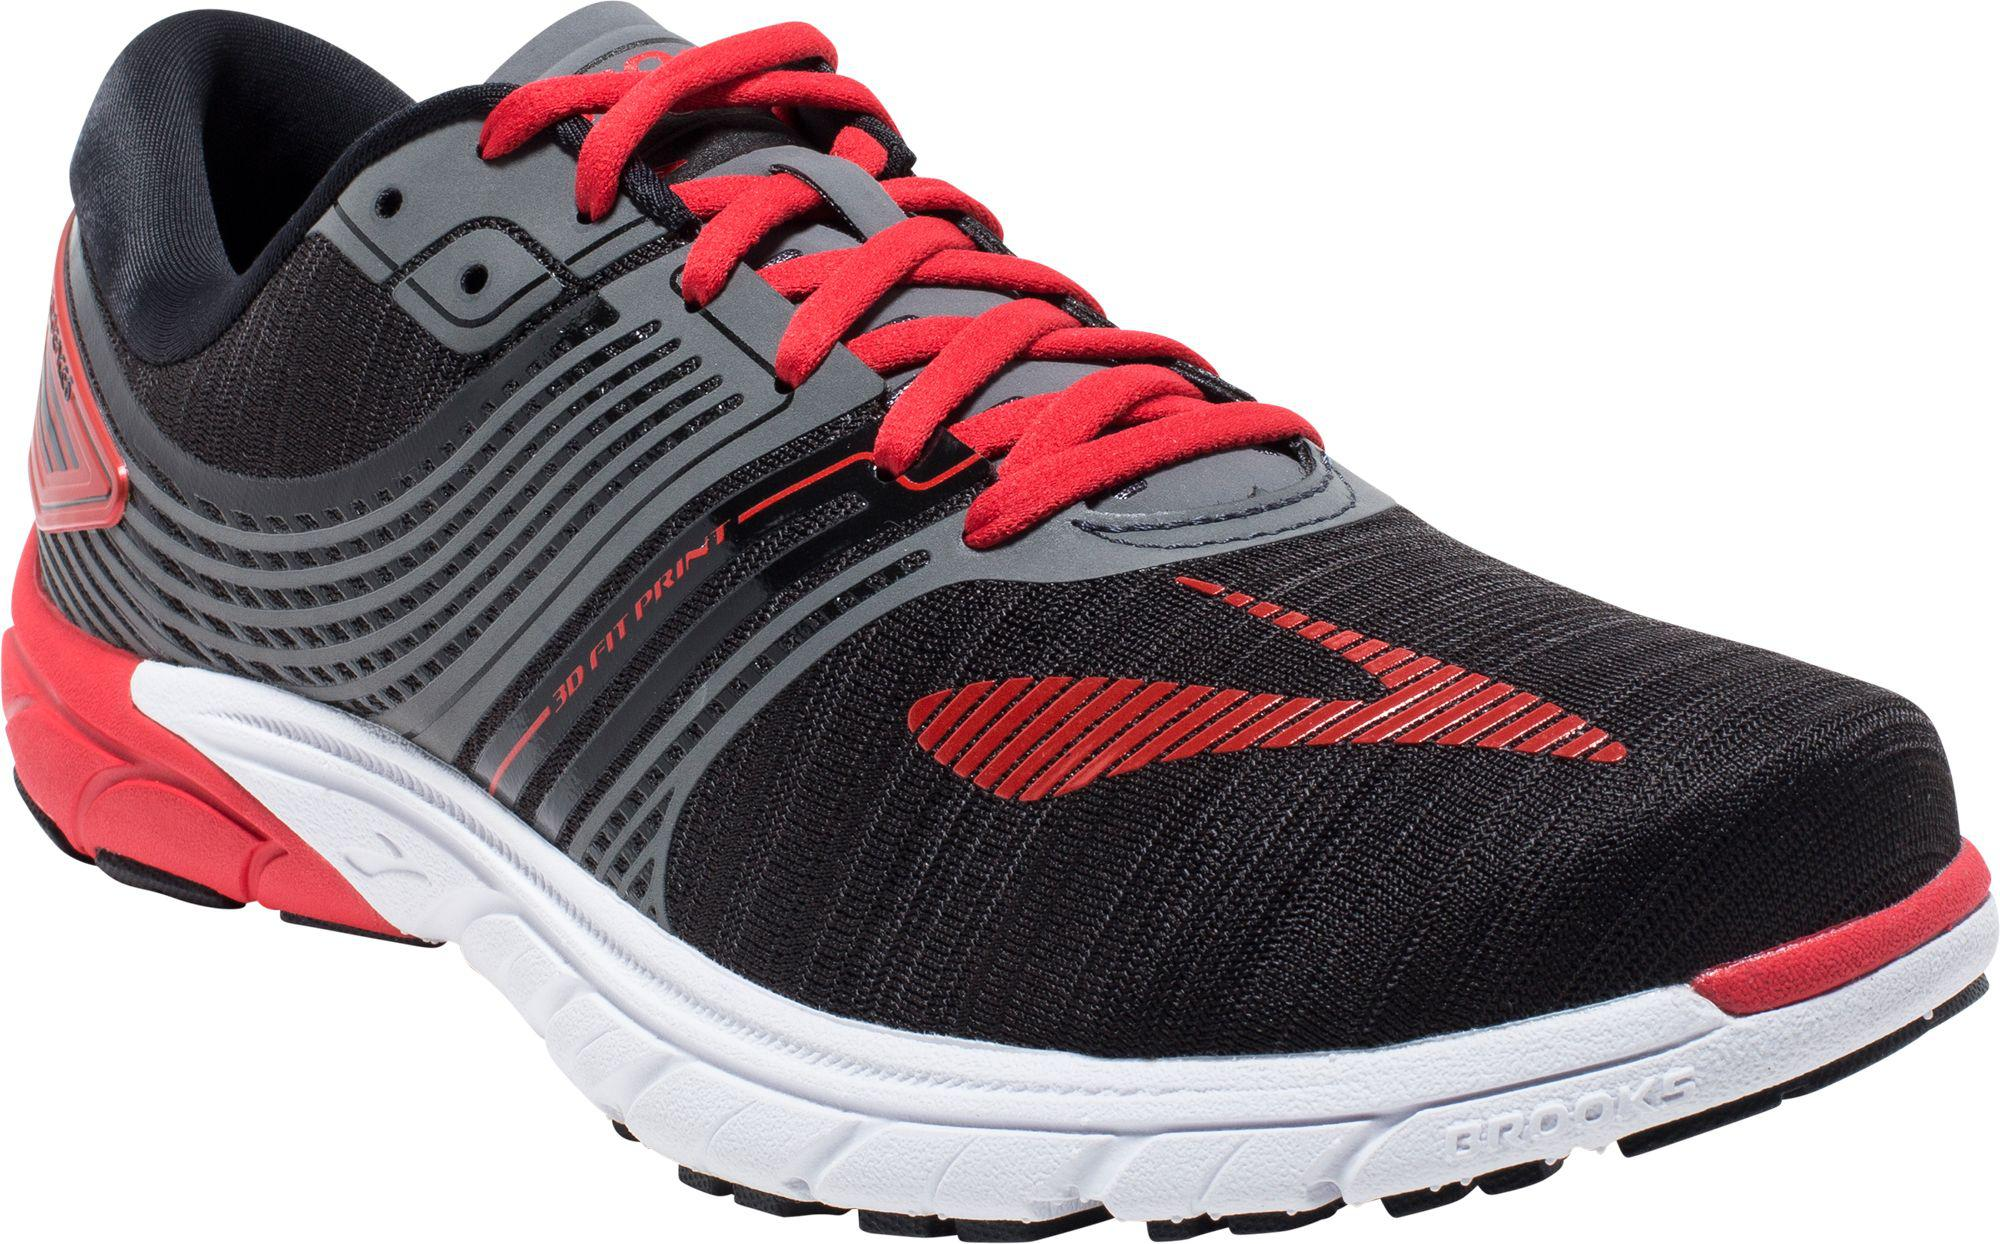 0f4a4719cf0 Lyst - Brooks Purecadence 6 Running Shoes in Black for Men